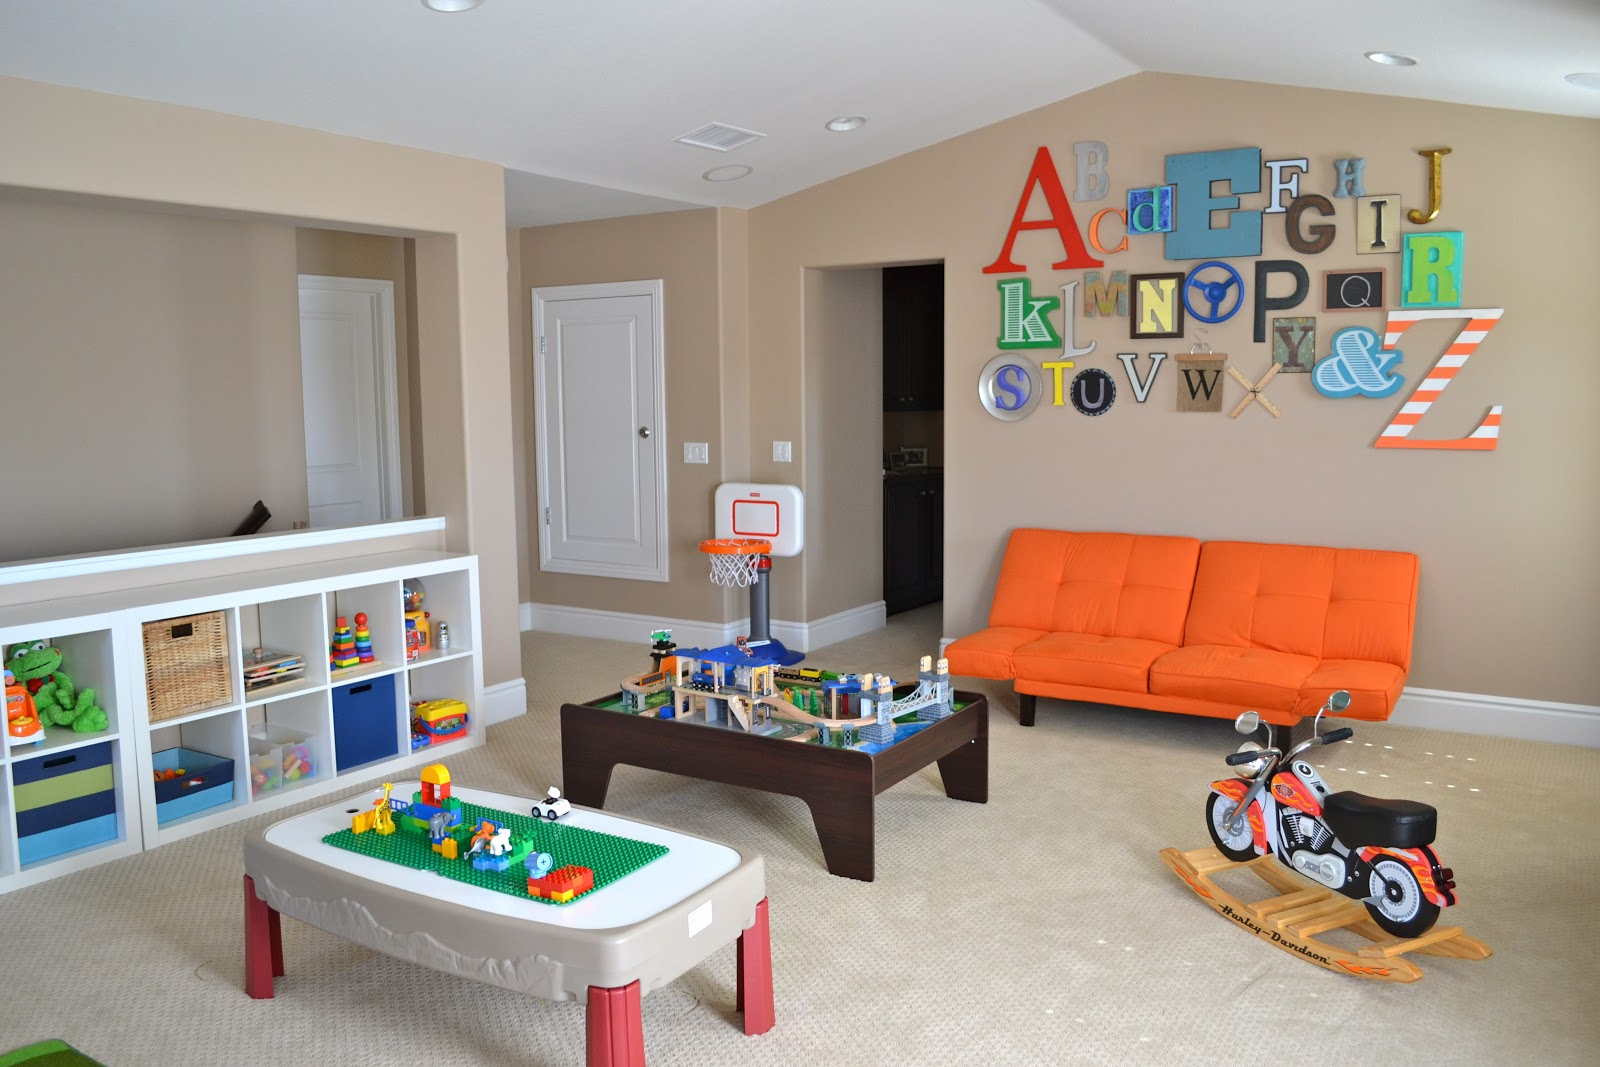 Fun Playroom Ideas Playroom Tour With Lots Of Diy Ideas Color Made Happy